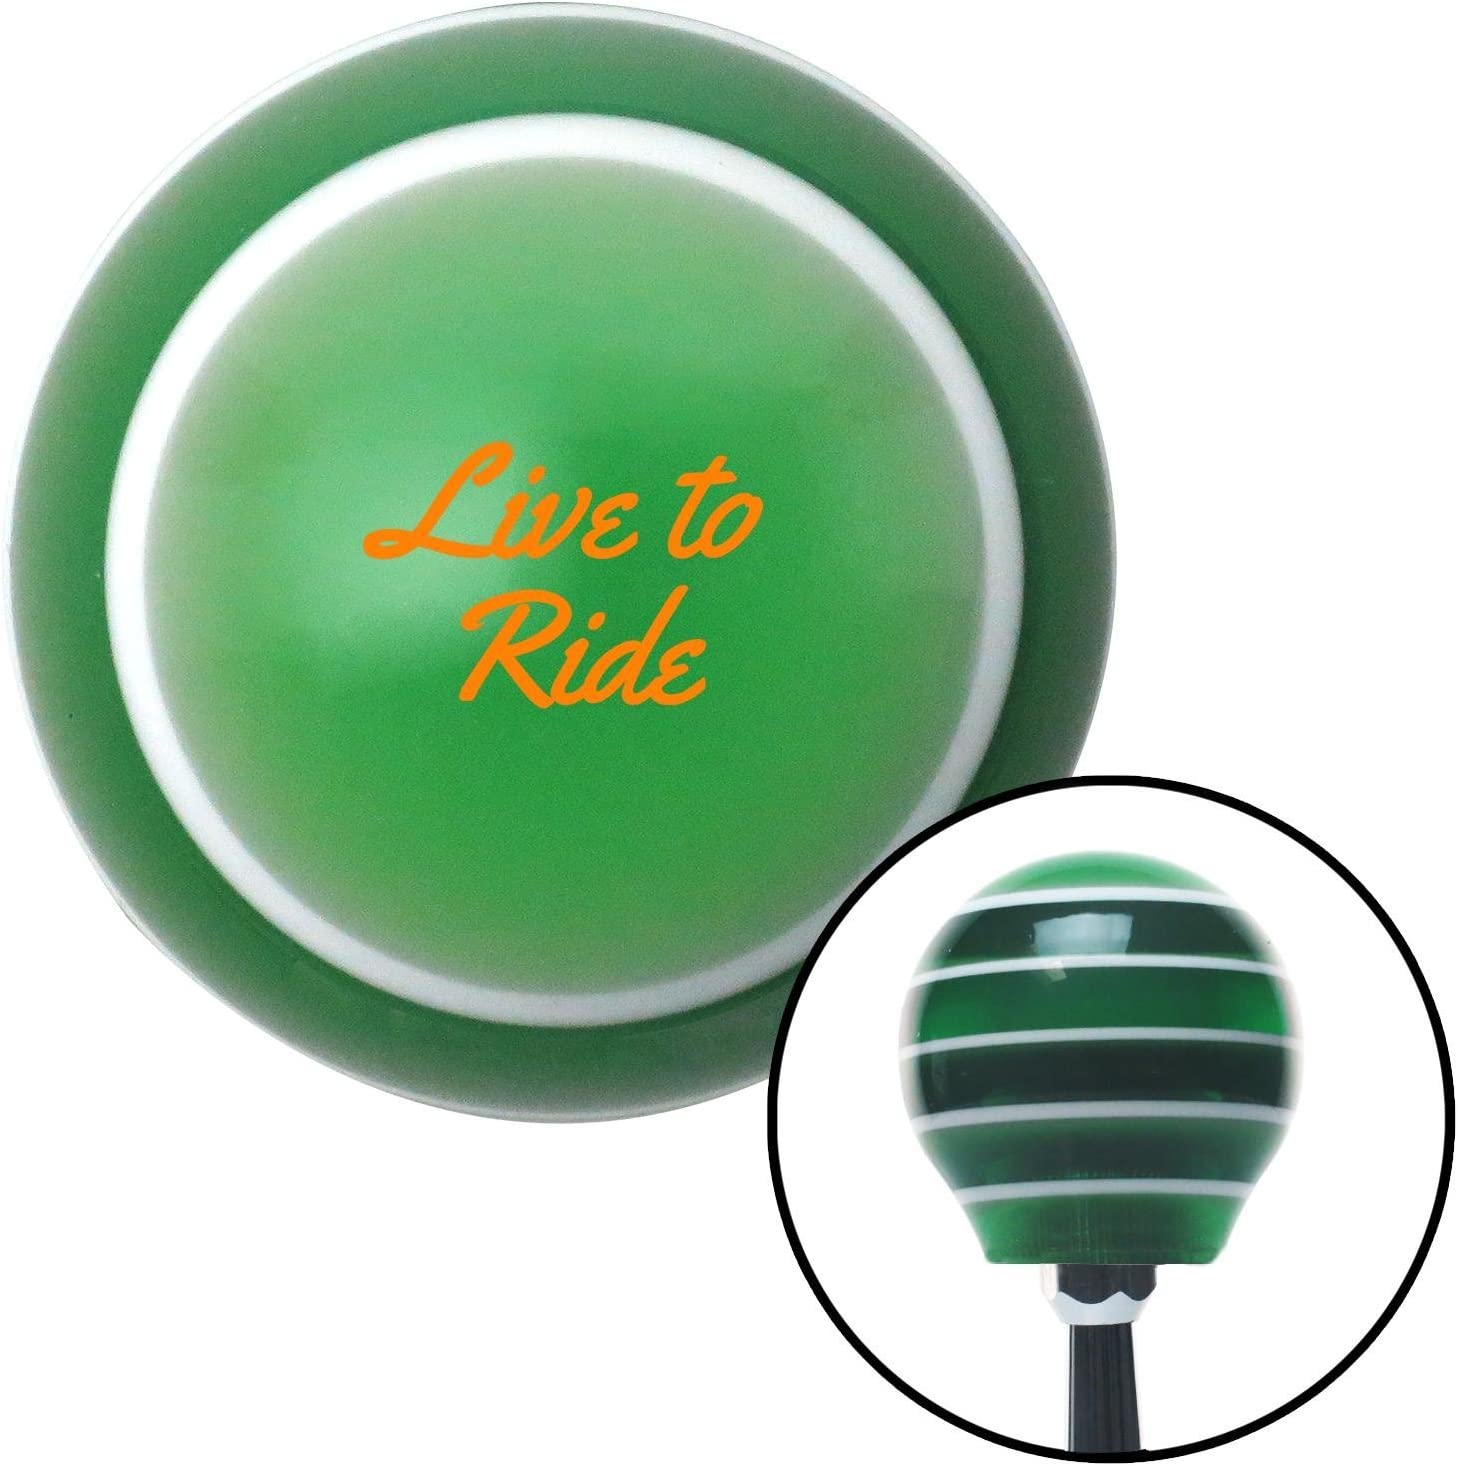 American Shifter 275085 Shift Knob Orange Live to Ride Green Stripe with M16 x 1.5 Insert